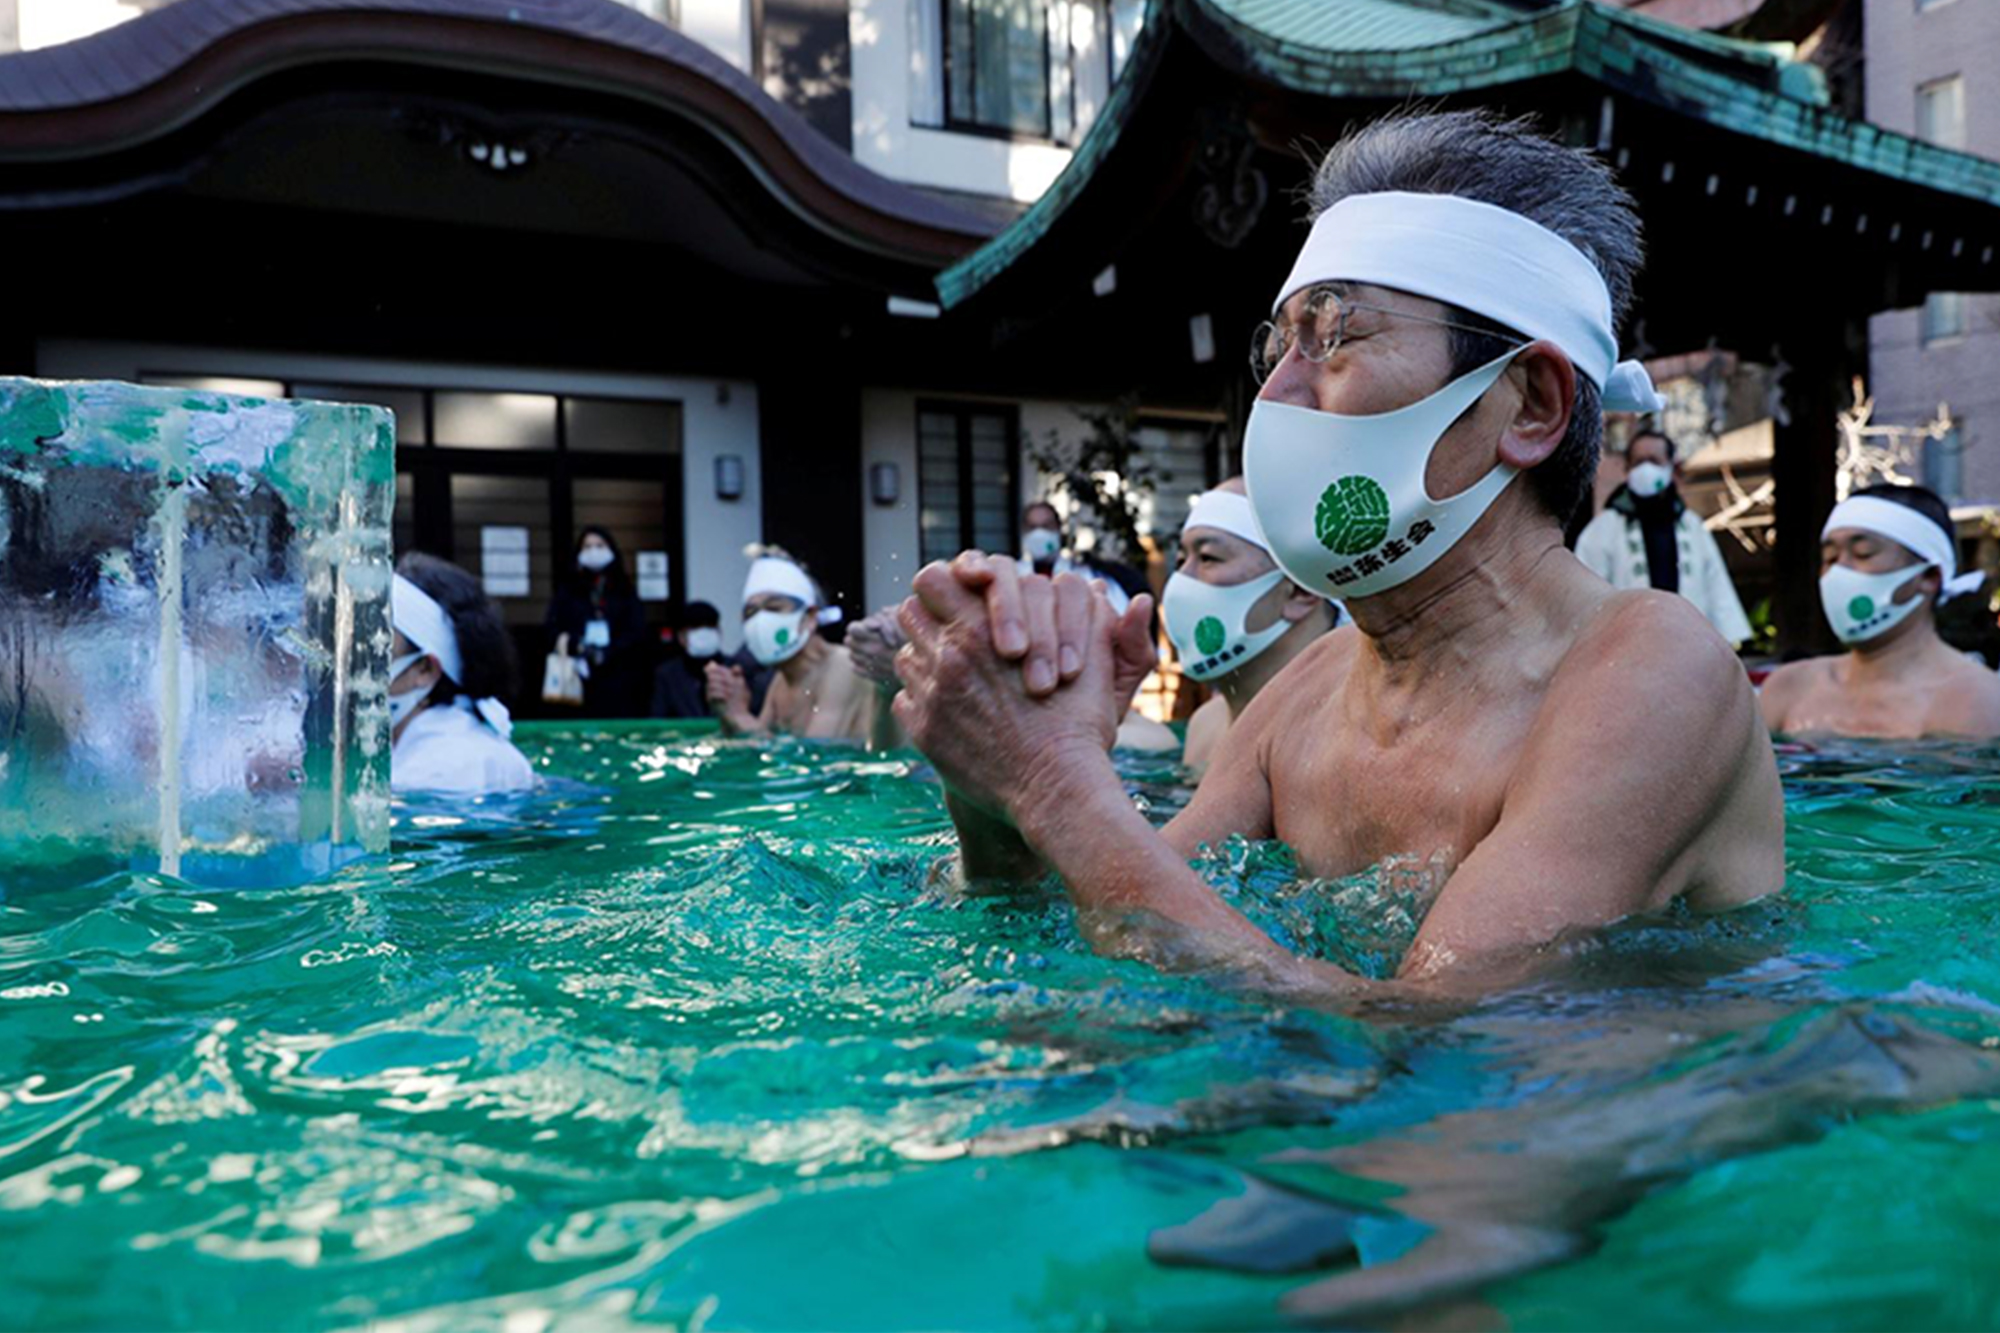 Japanese pray for the end of COVID-19 in ice-cold water